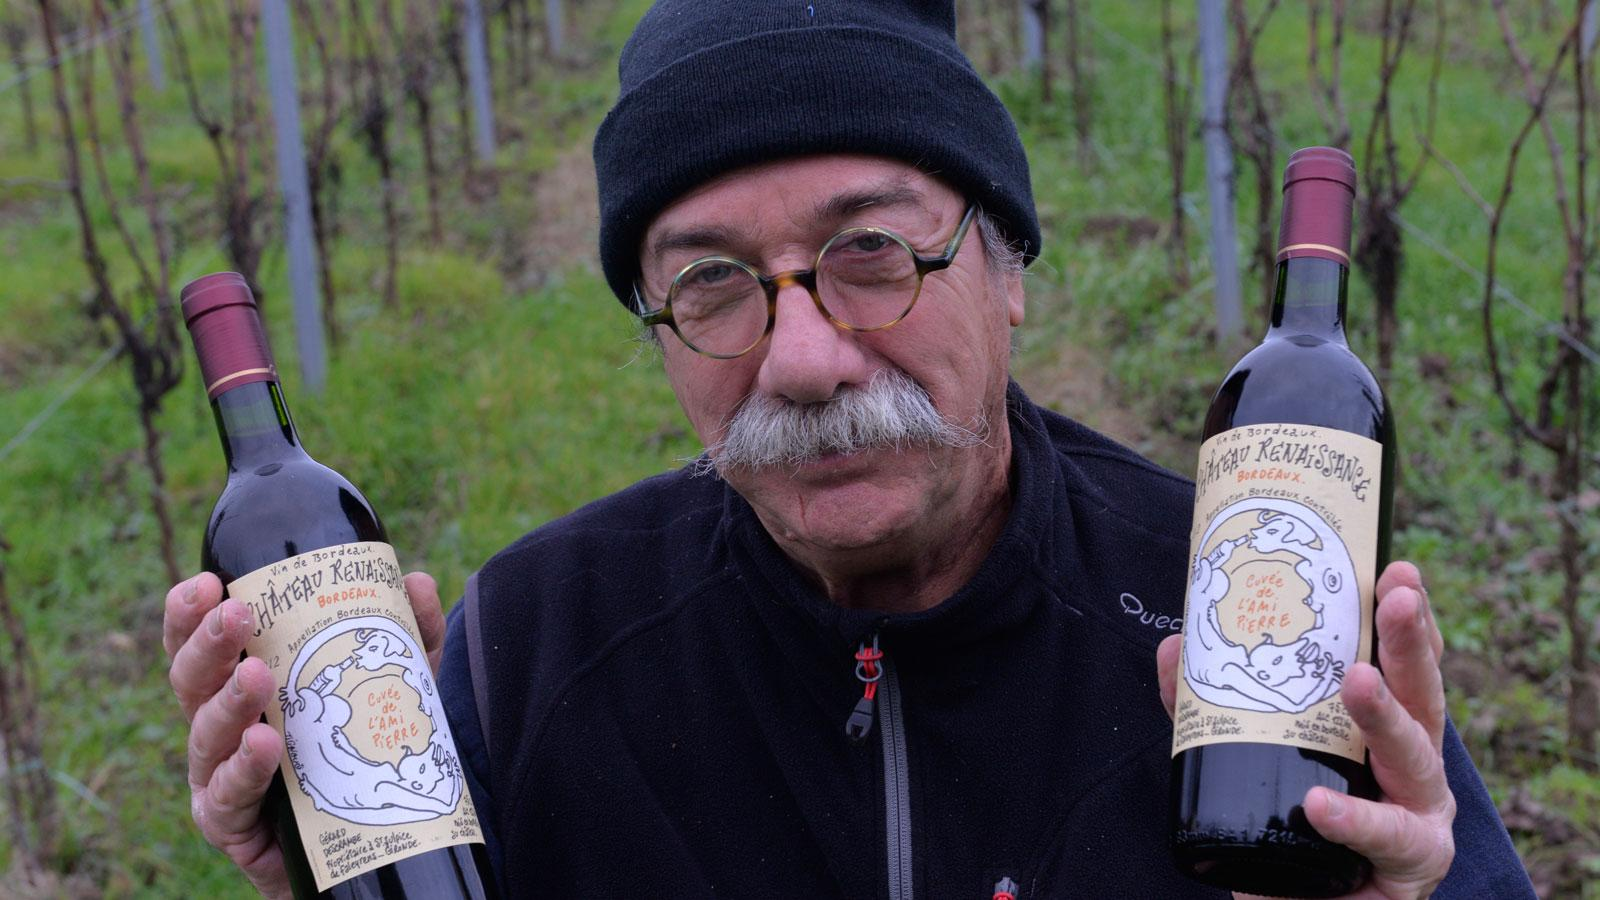 Bordeaux winemaker Gérard Descrambe holds up a Château Renaissance wine bottle with a label designed by the Charlie Hebdo cartoonist known as Tignous, killed in the terror attack.